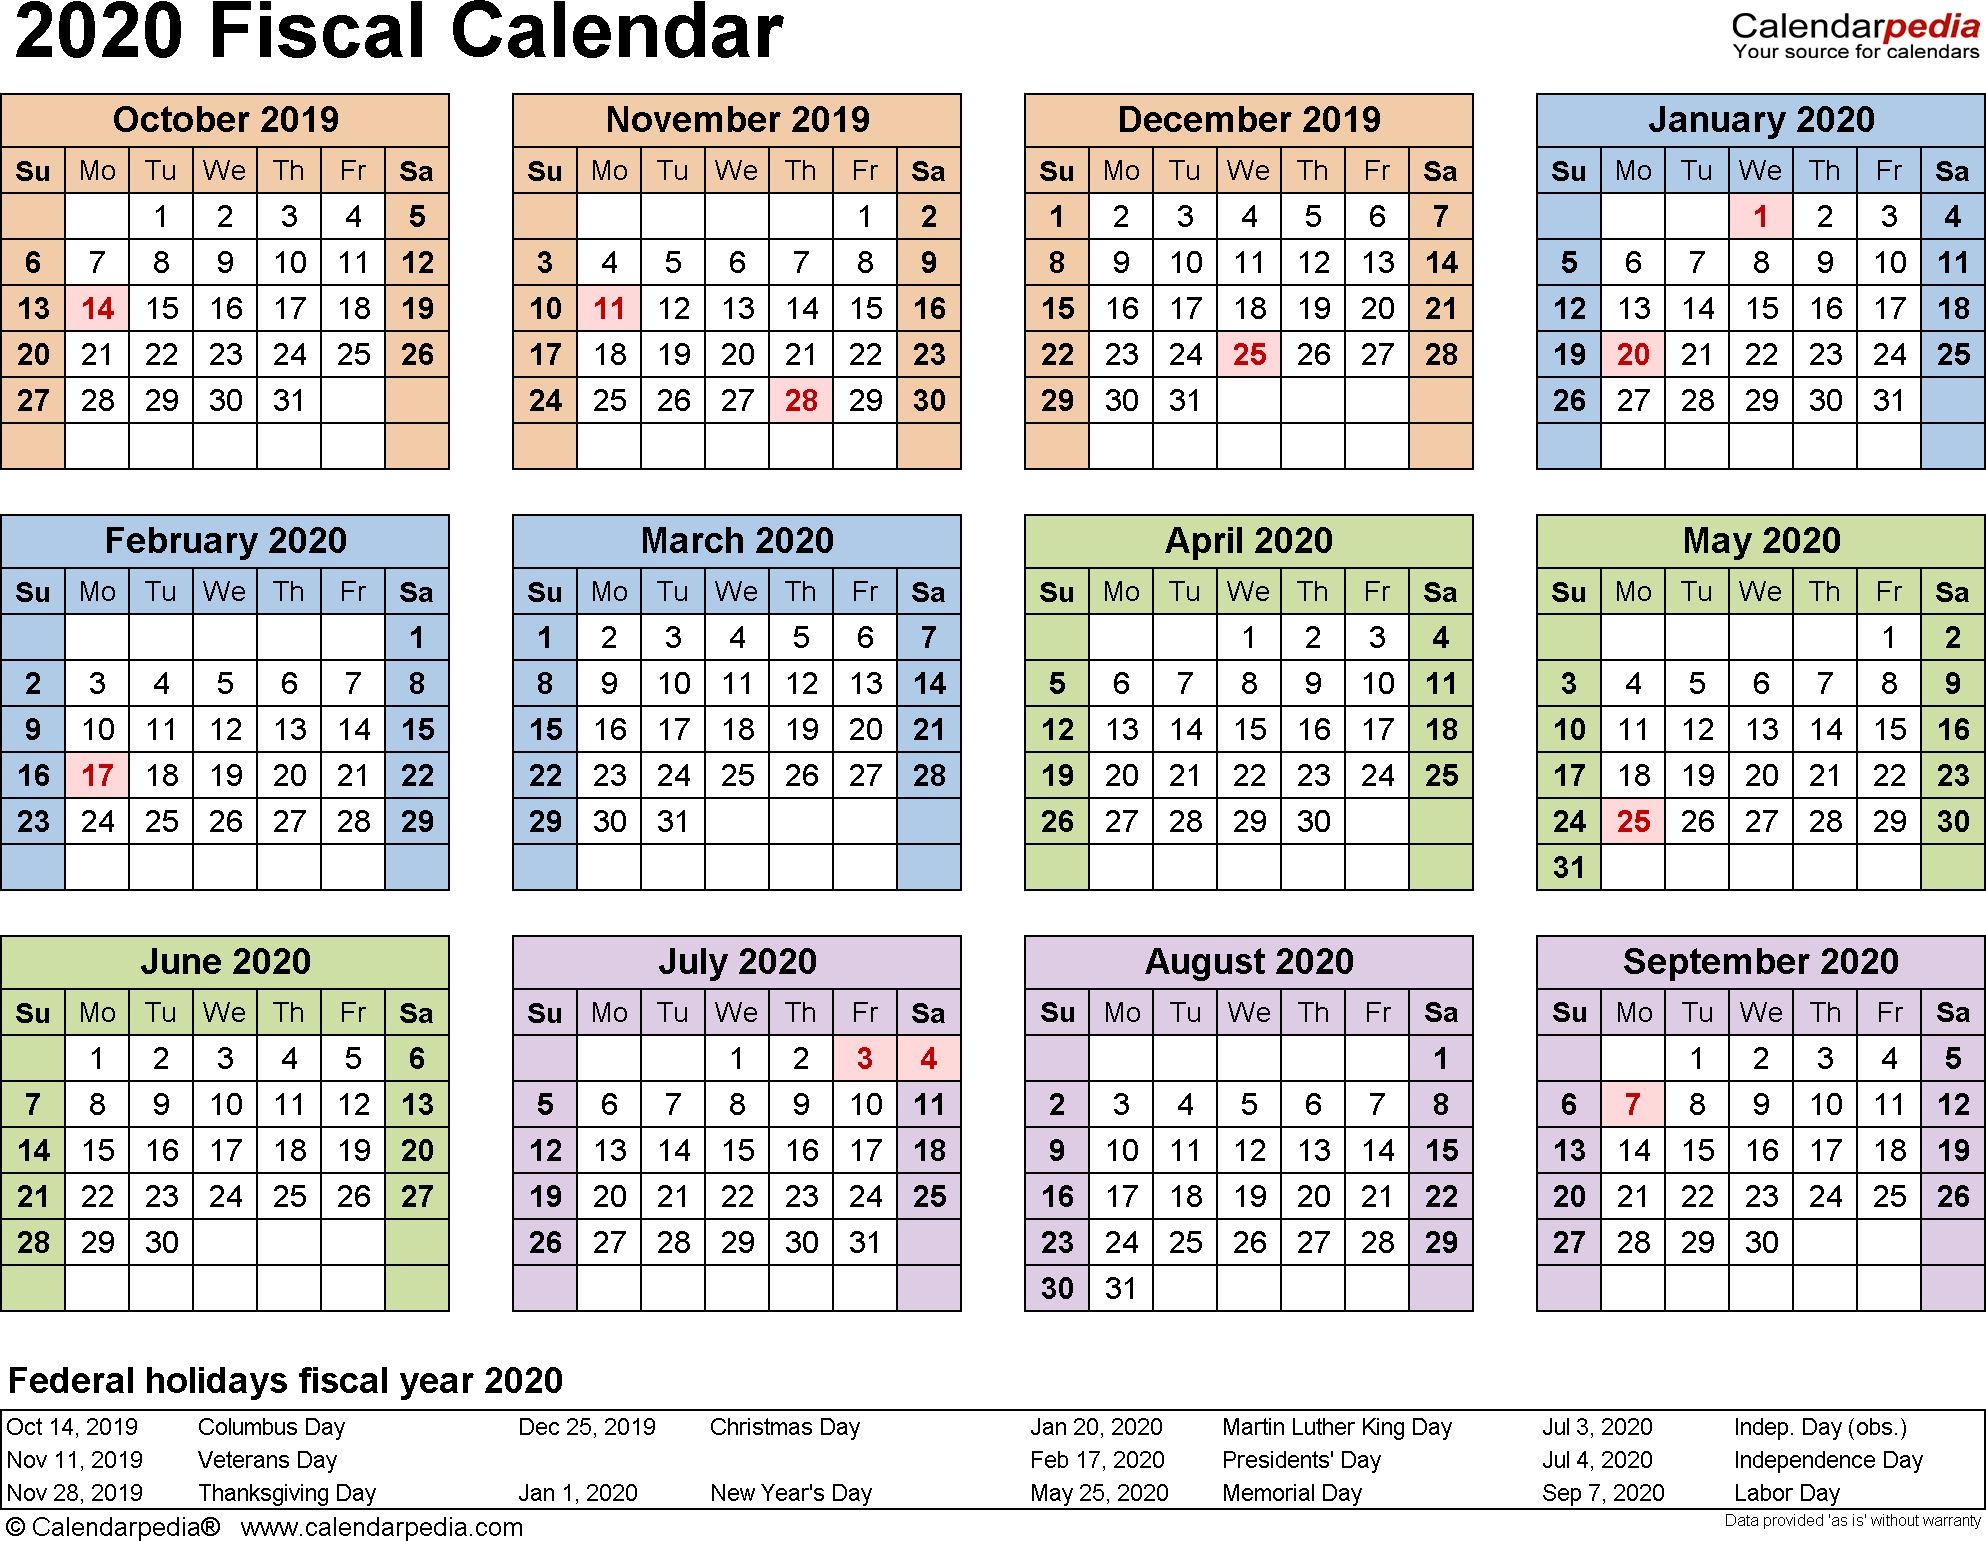 Fiscal Calendars 2020 - Free Printable Word Templates intended for Free Word 2020 Calendar Year At A Glance